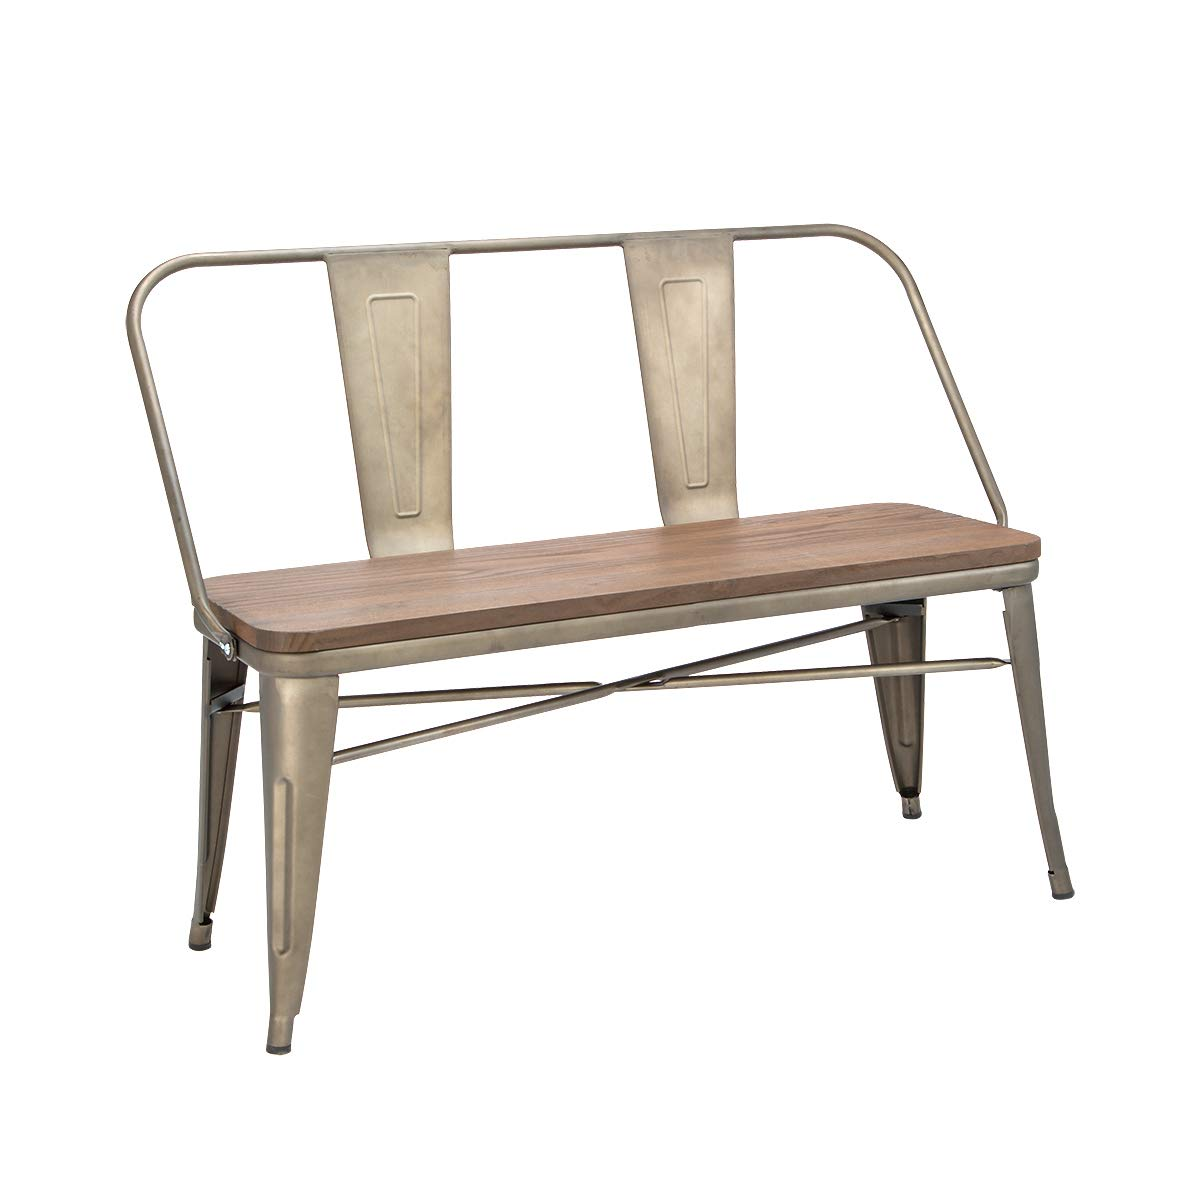 Erommy Metal Bench Industrial Mid-Century 2 Person Chair with Wood Seat,Dining Bench with Floor Protector